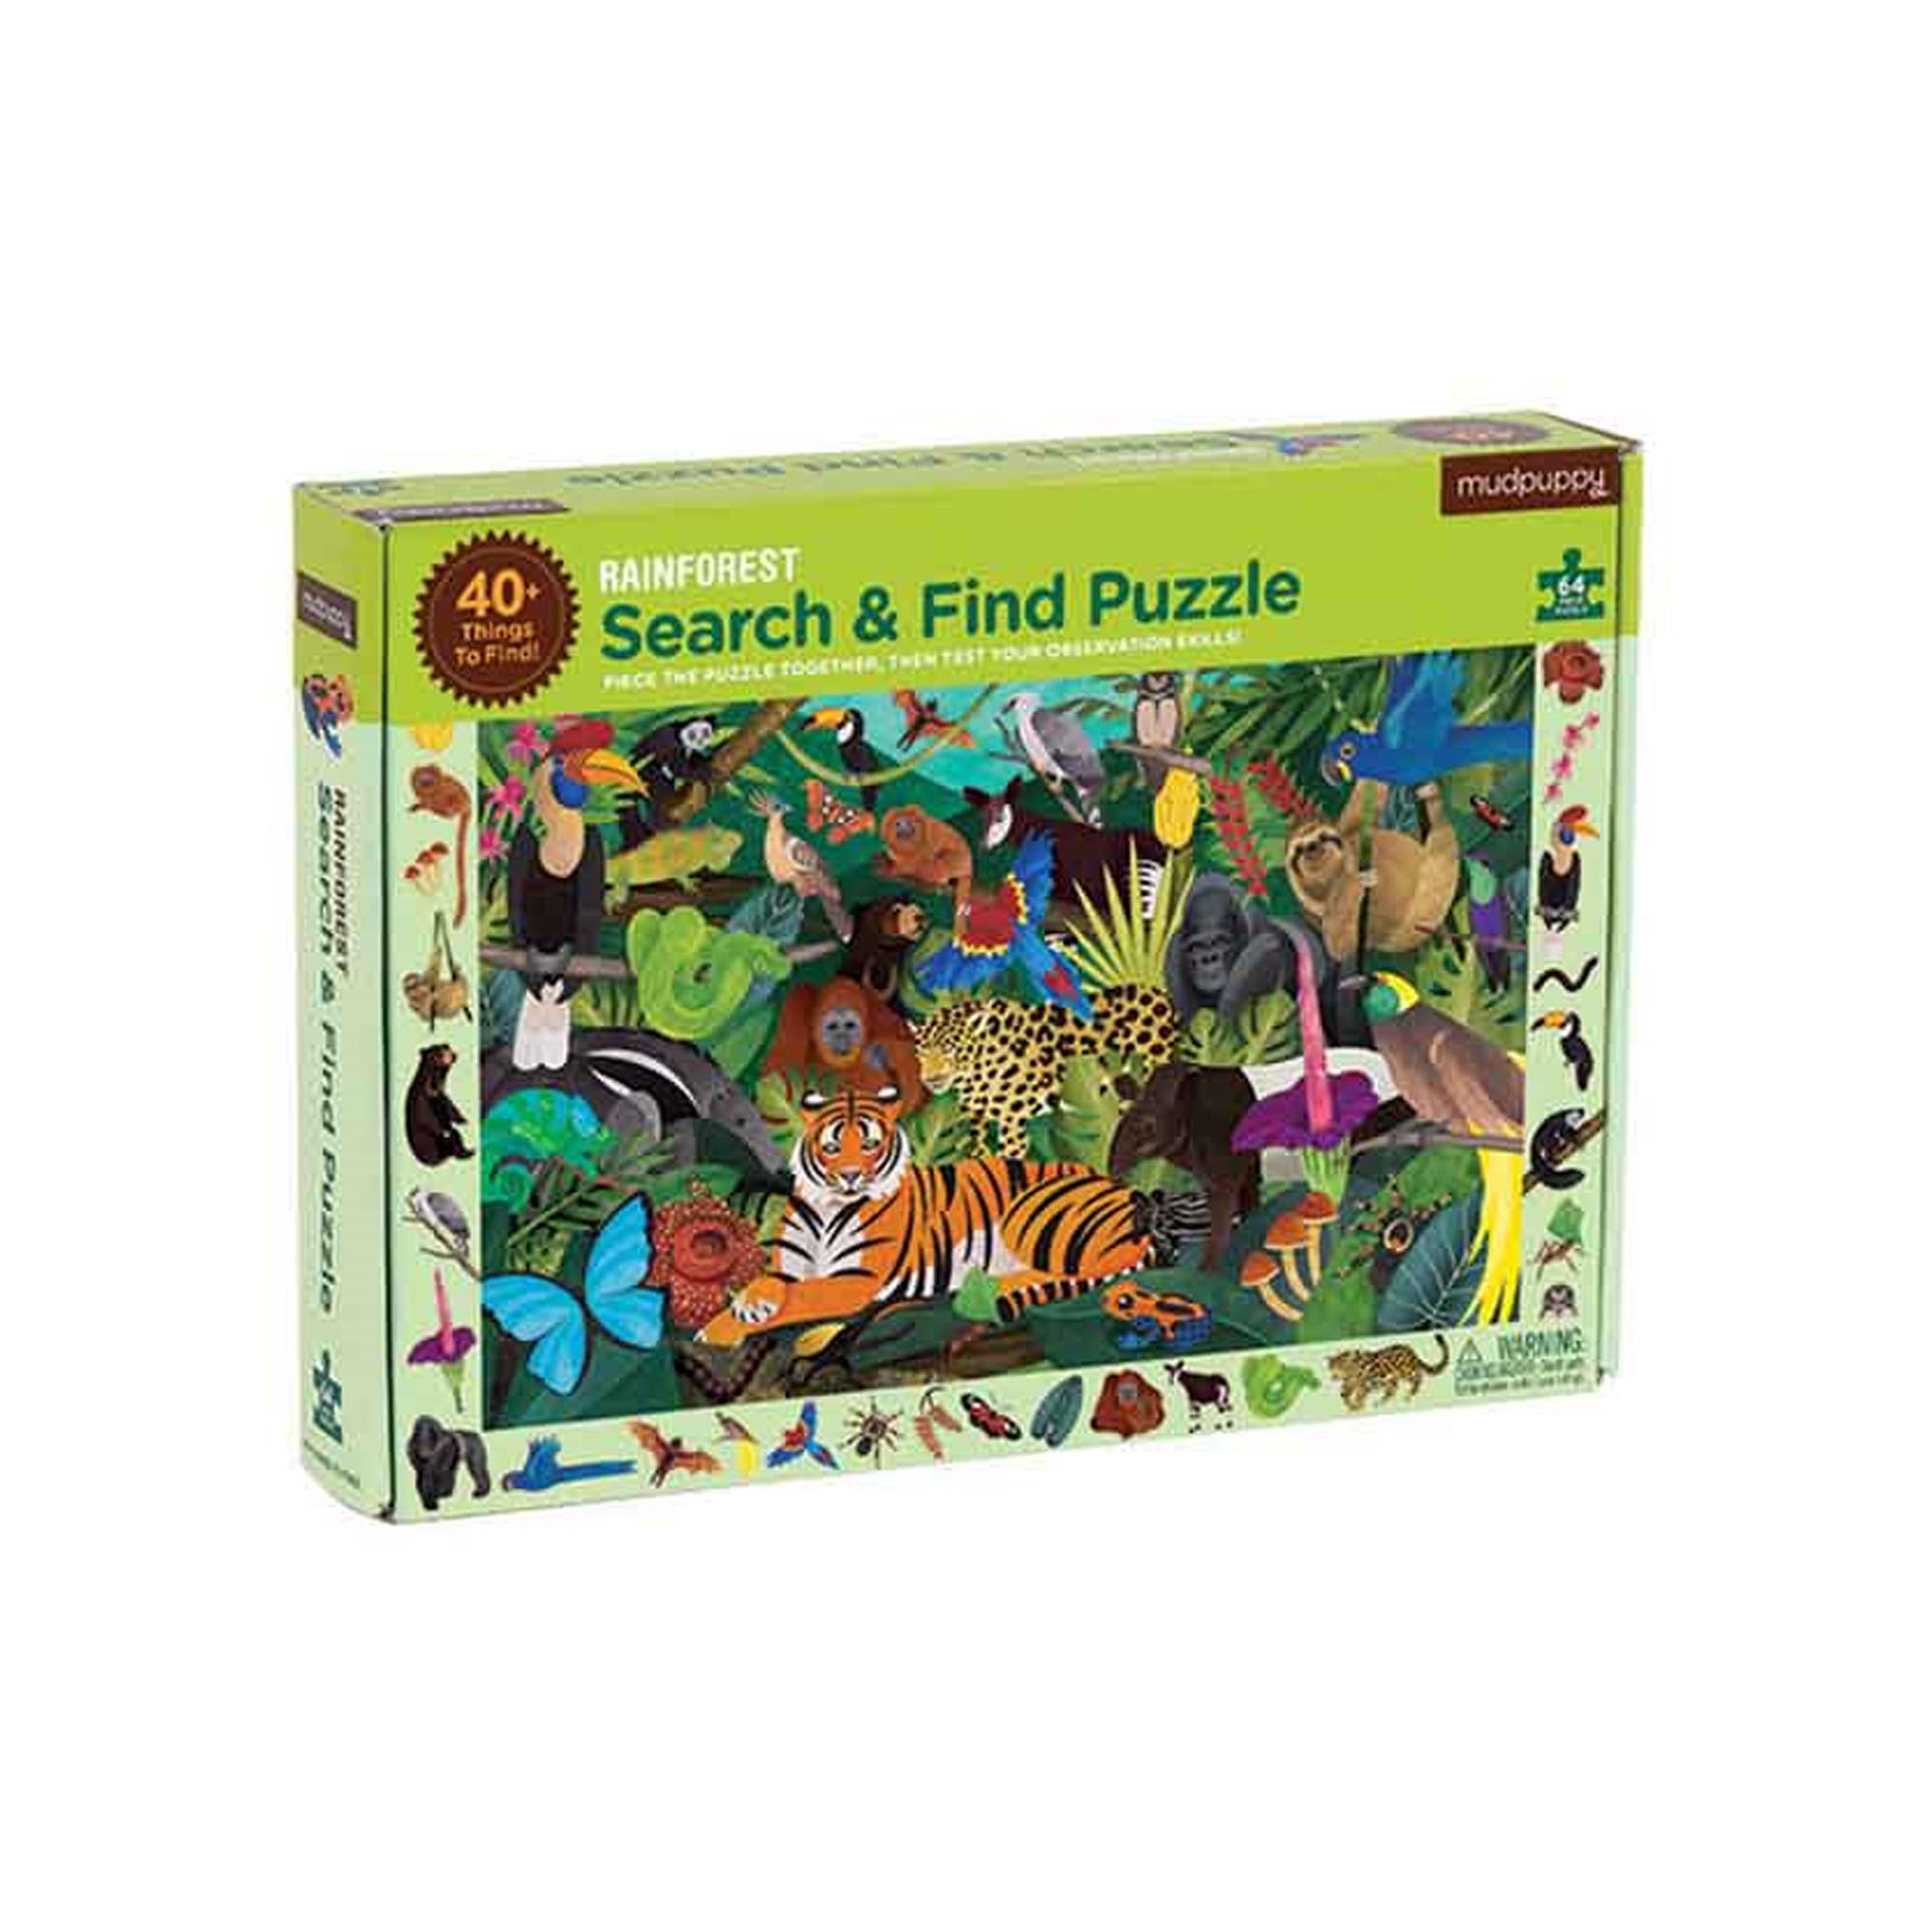 Rainforest search and find puzzle